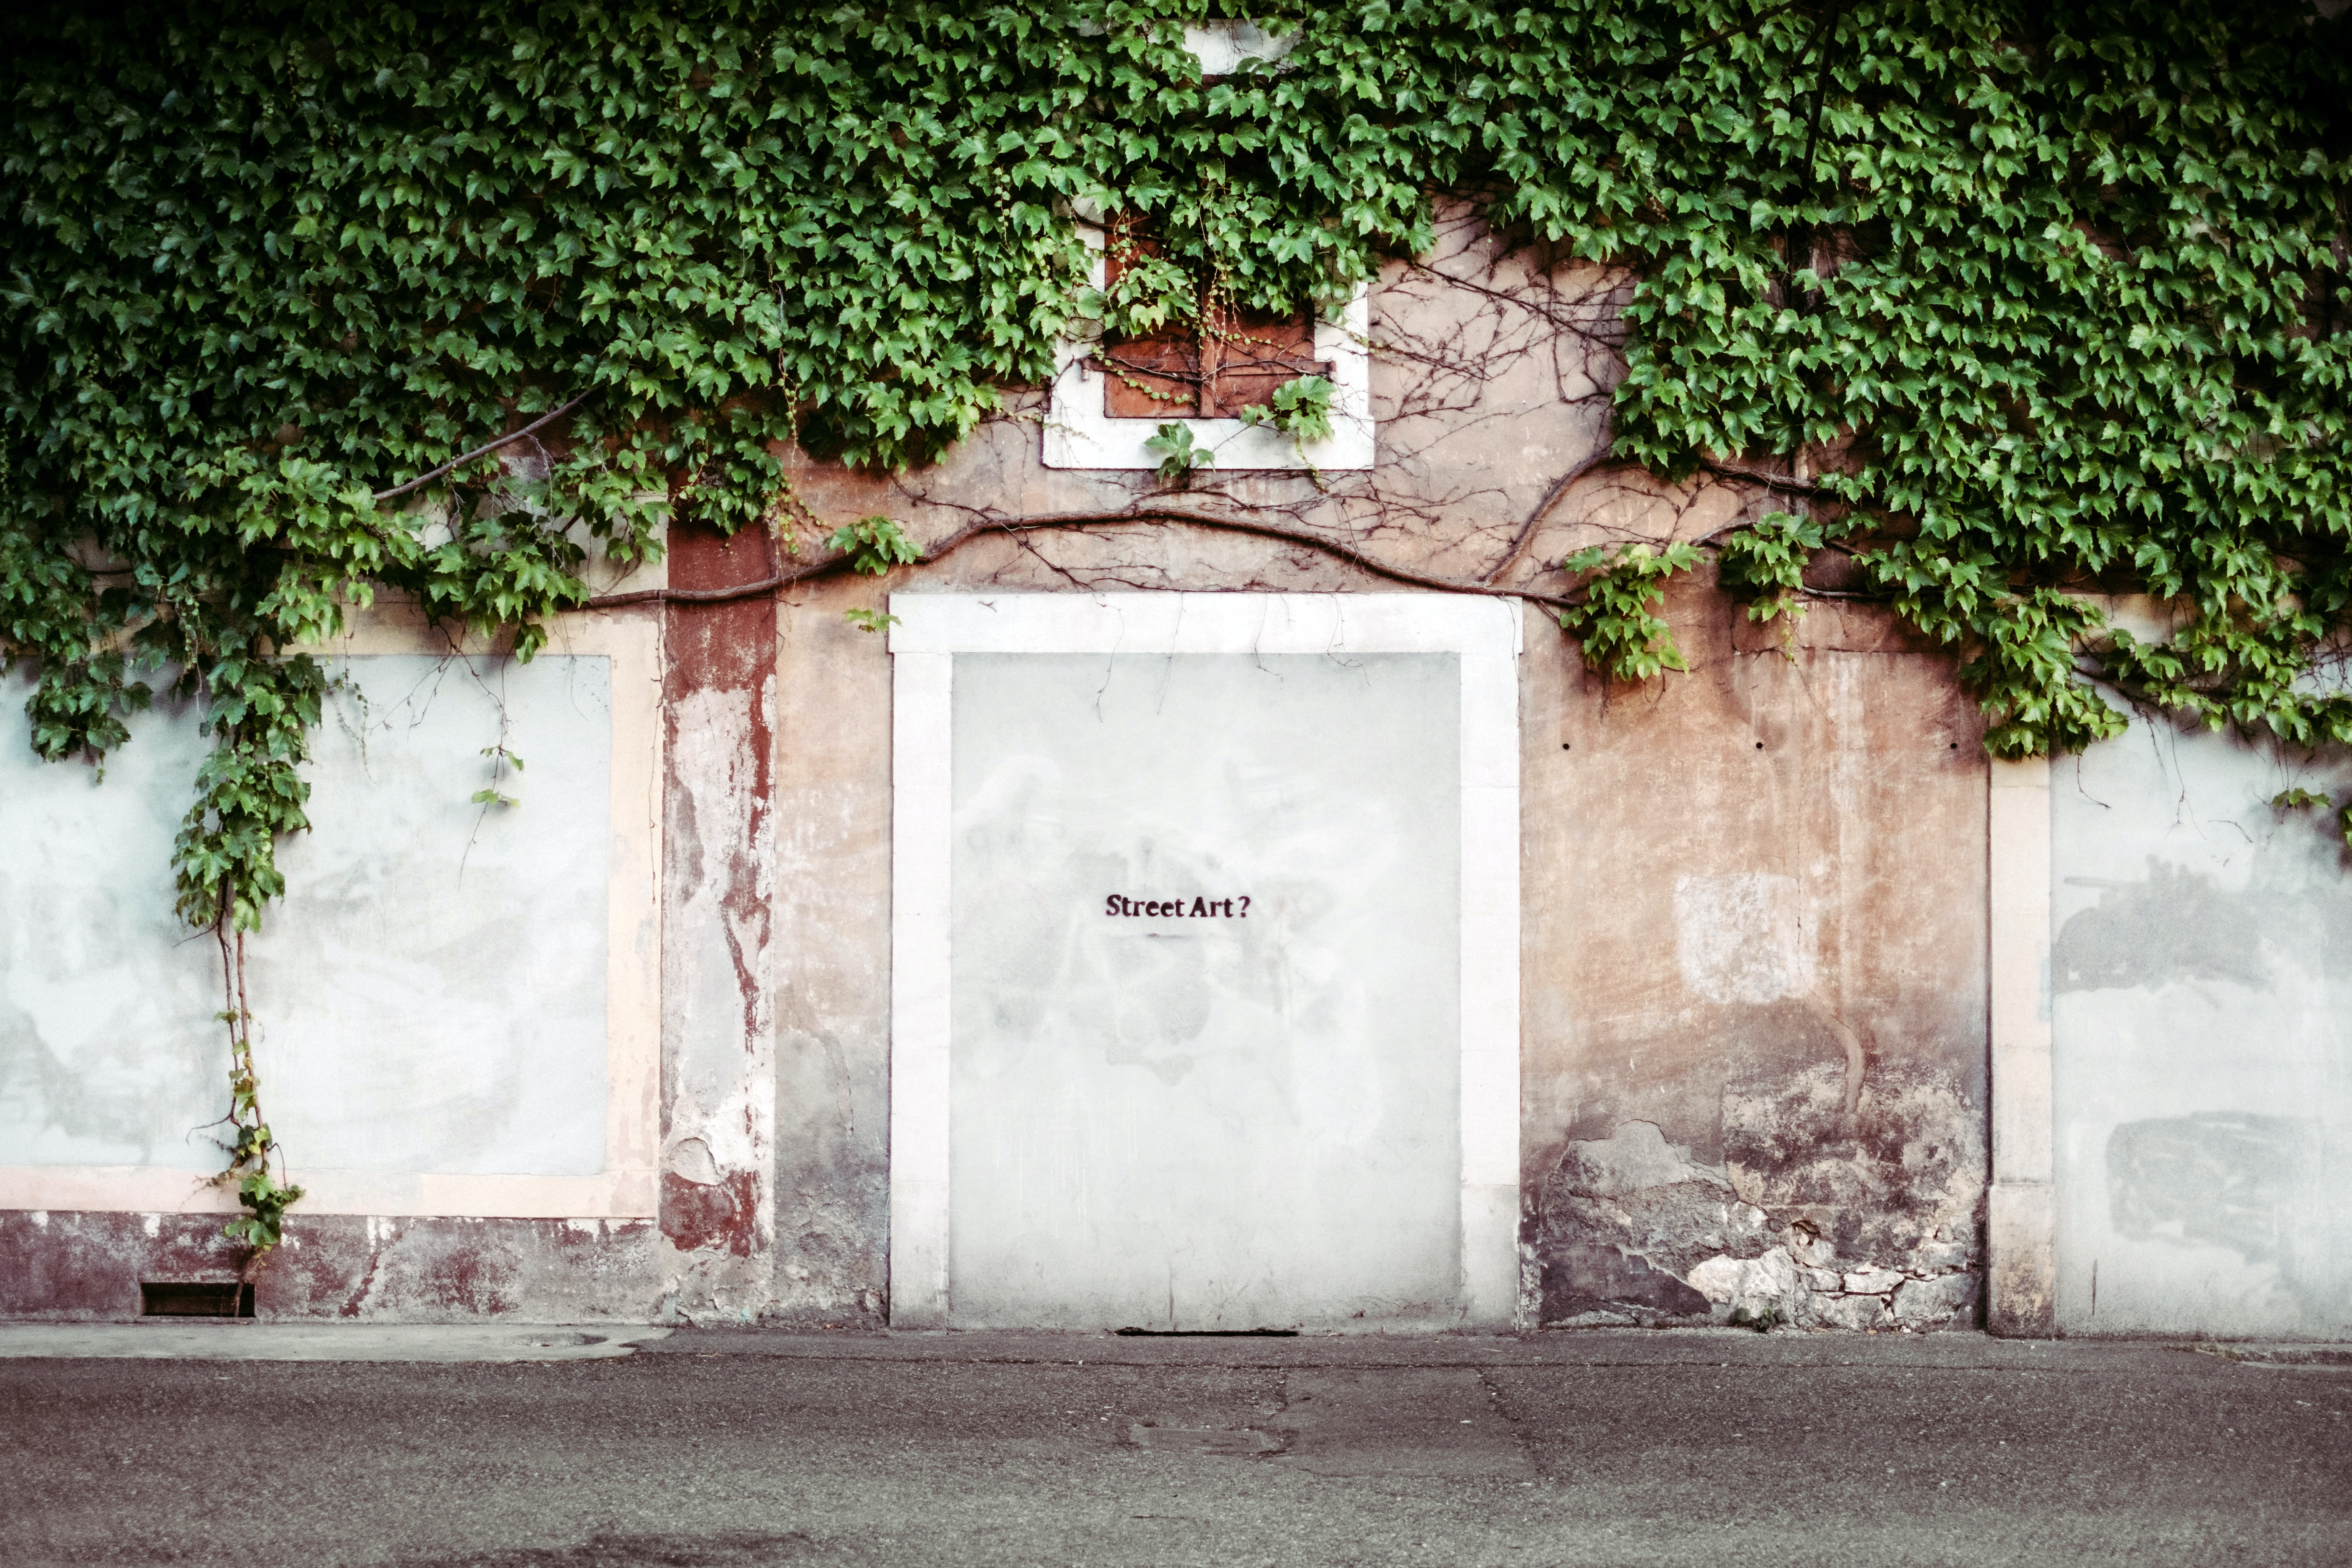 Ivy covered urban wall with street art text graffiti tag on white doorway in Geneva